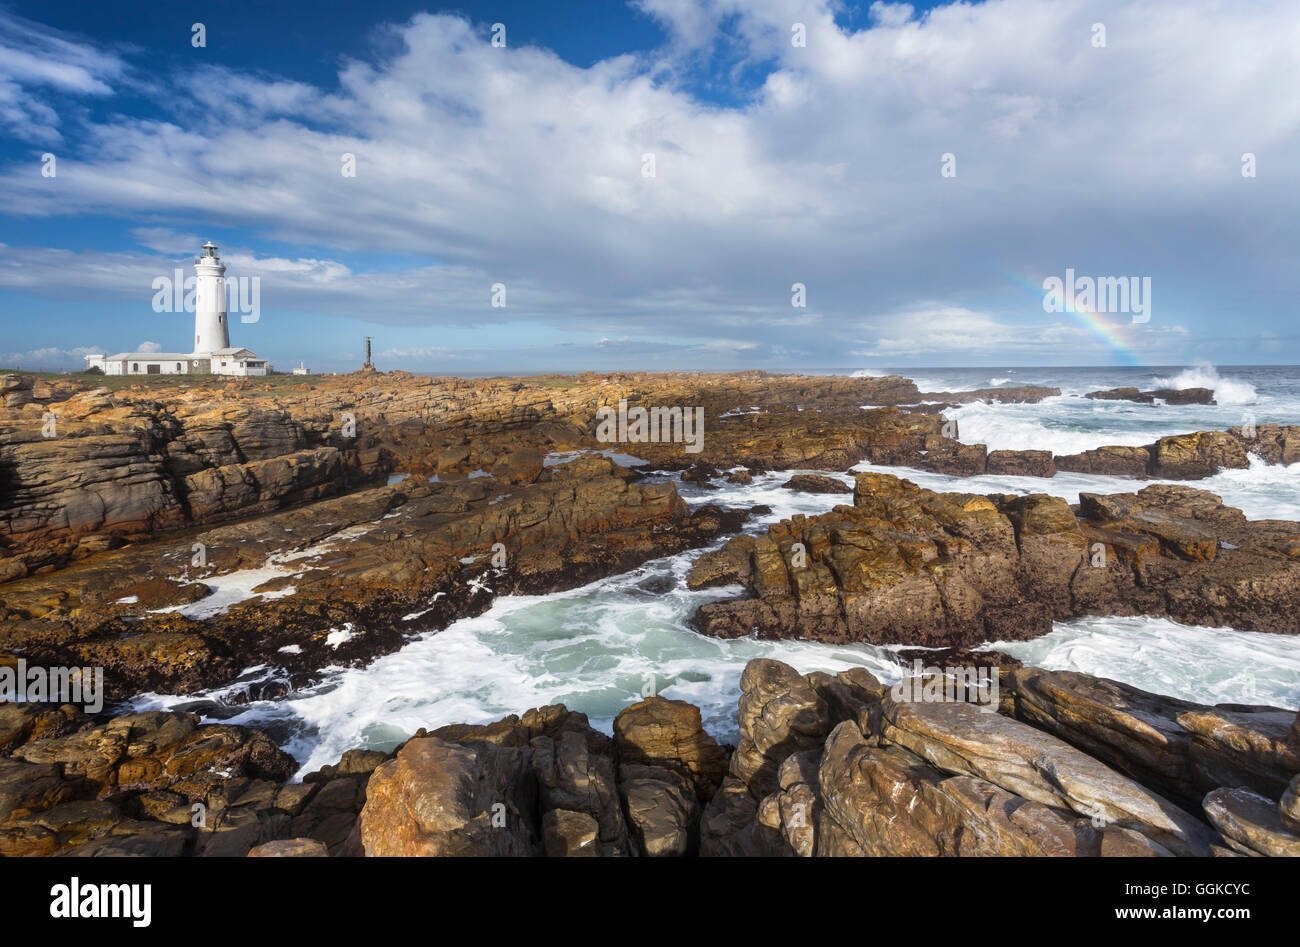 Cape St Francis, St Francis Bay, Indian Ocean, Eastern Cape, Südafrika - Stock Image